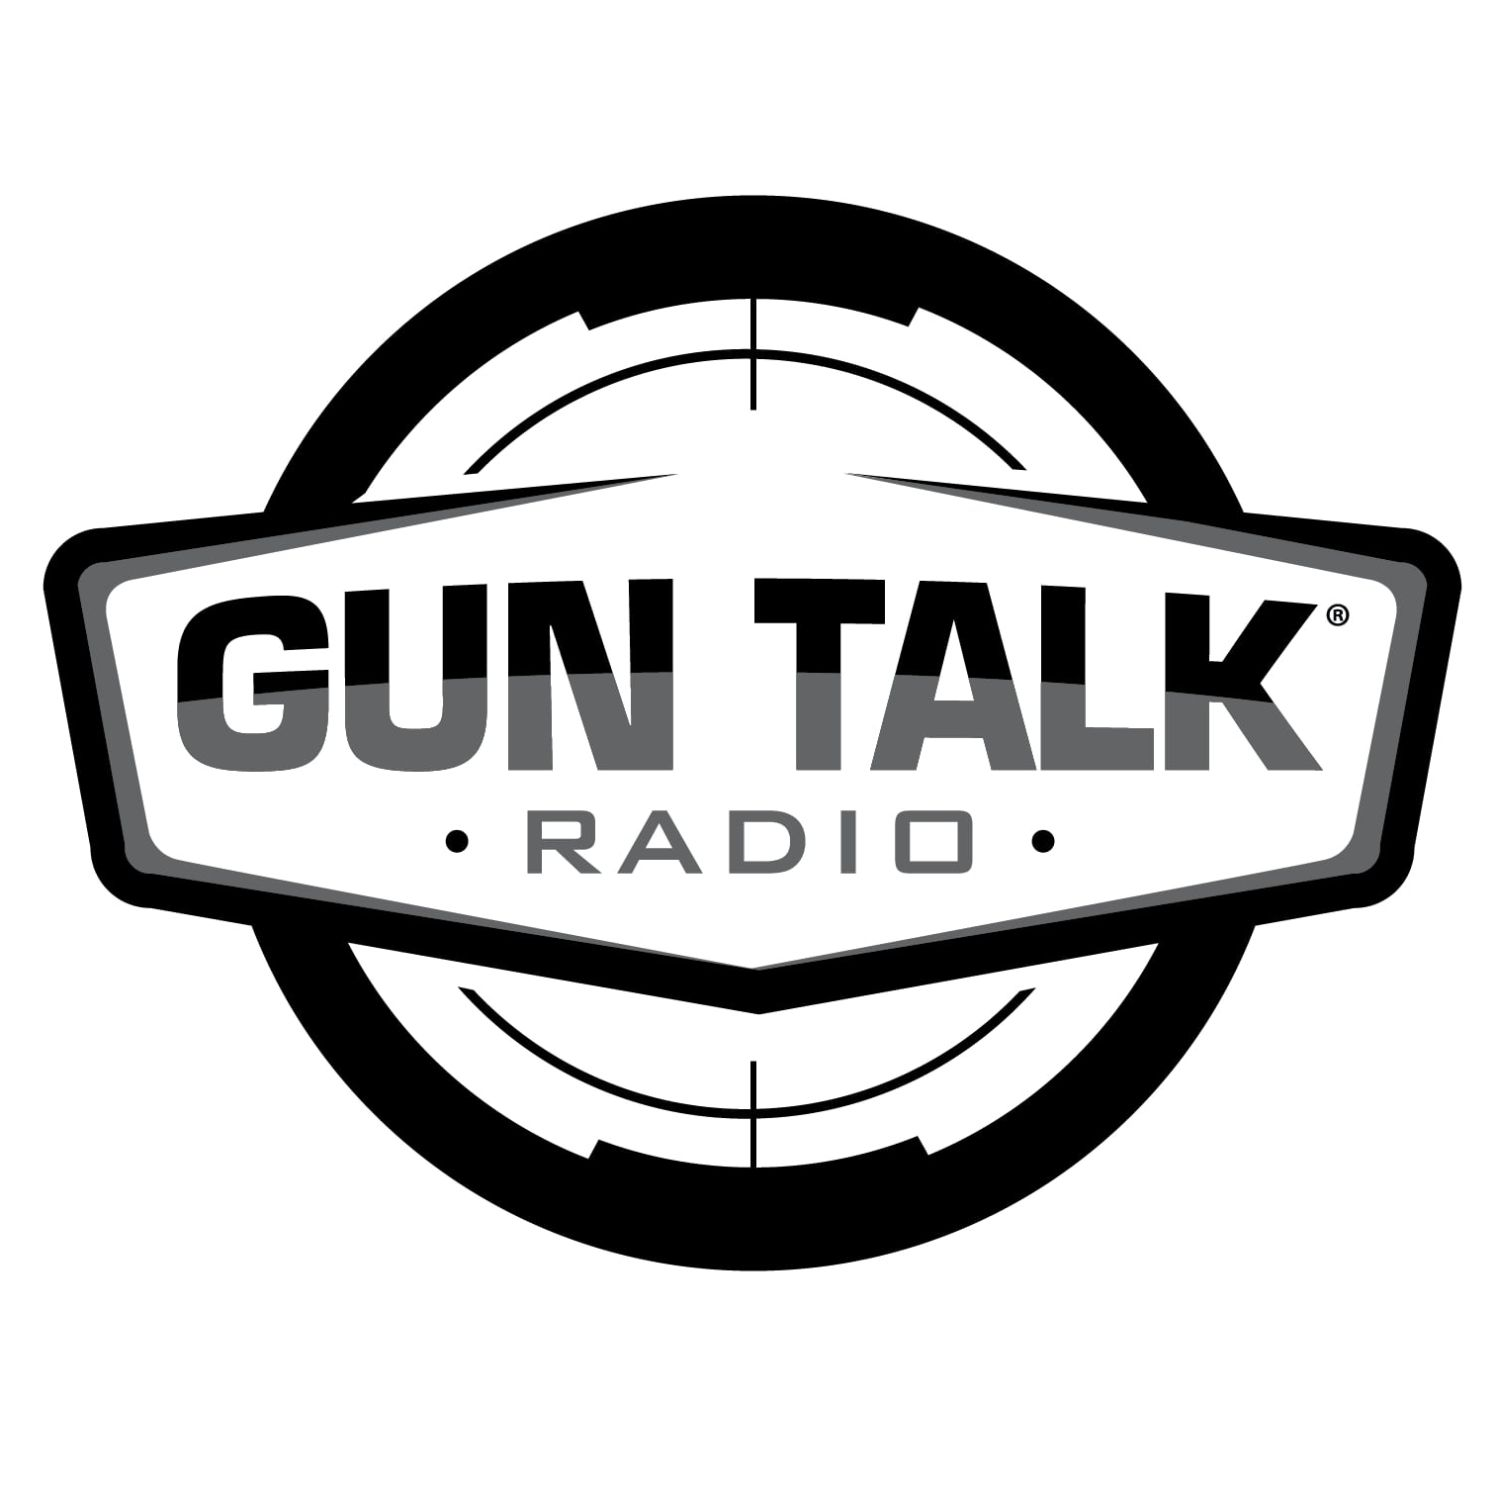 Artwork for Guntalk 2007-04-22 Part B